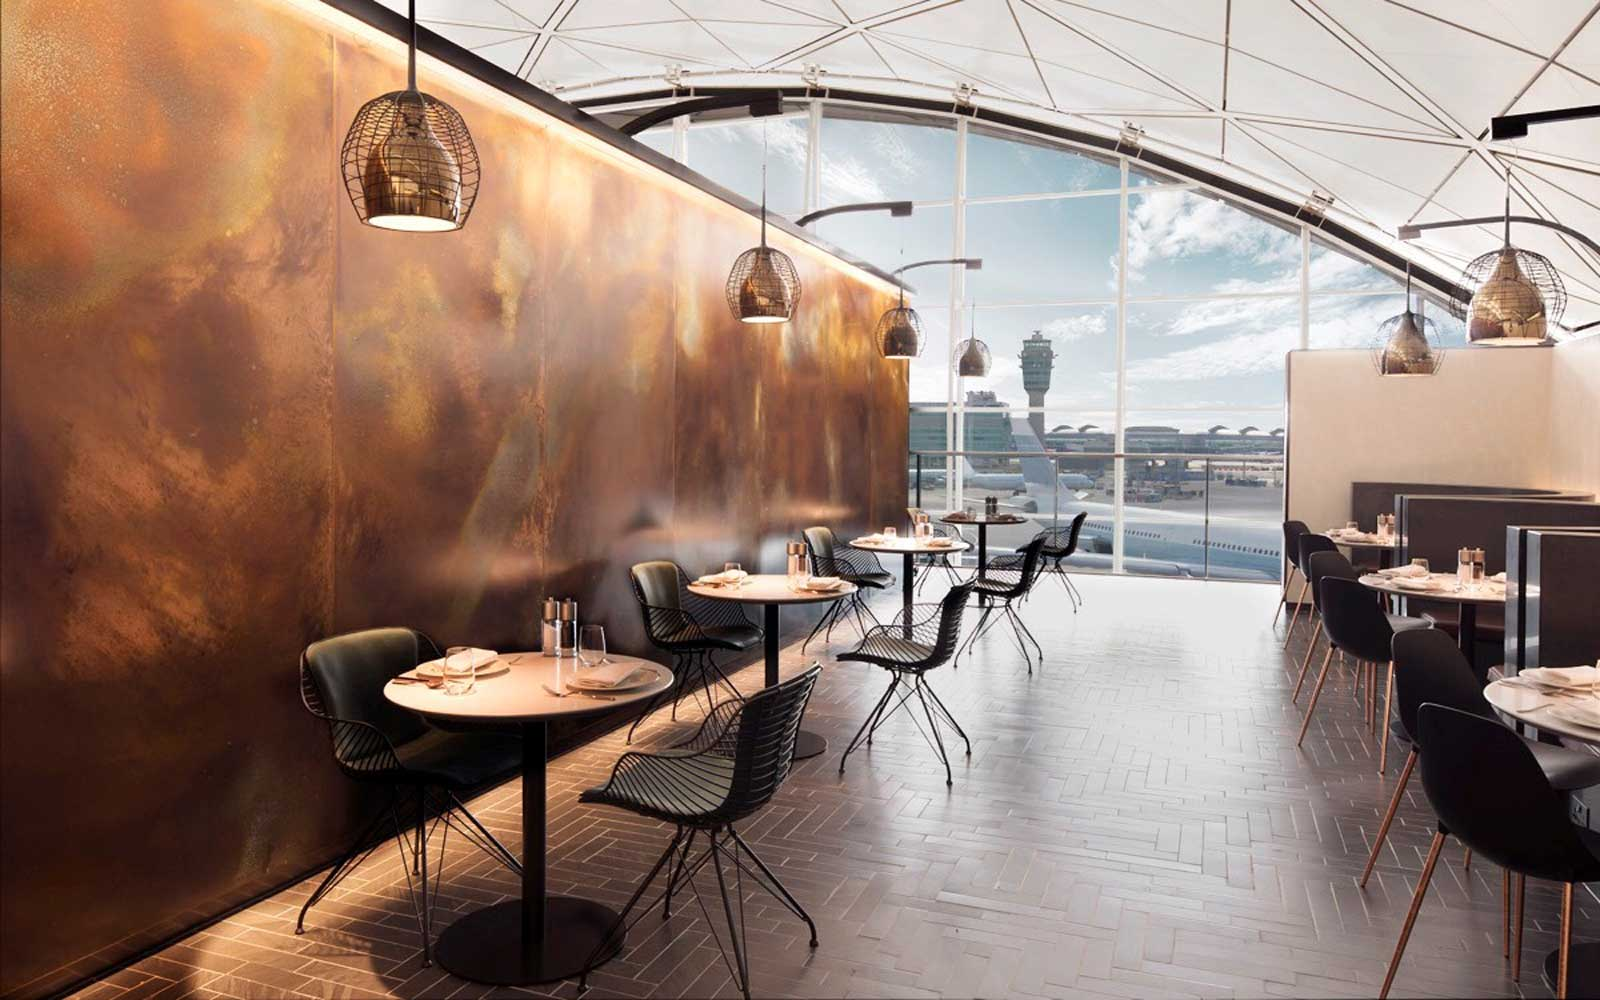 American Express Centurion Lounge The Luxury Airport